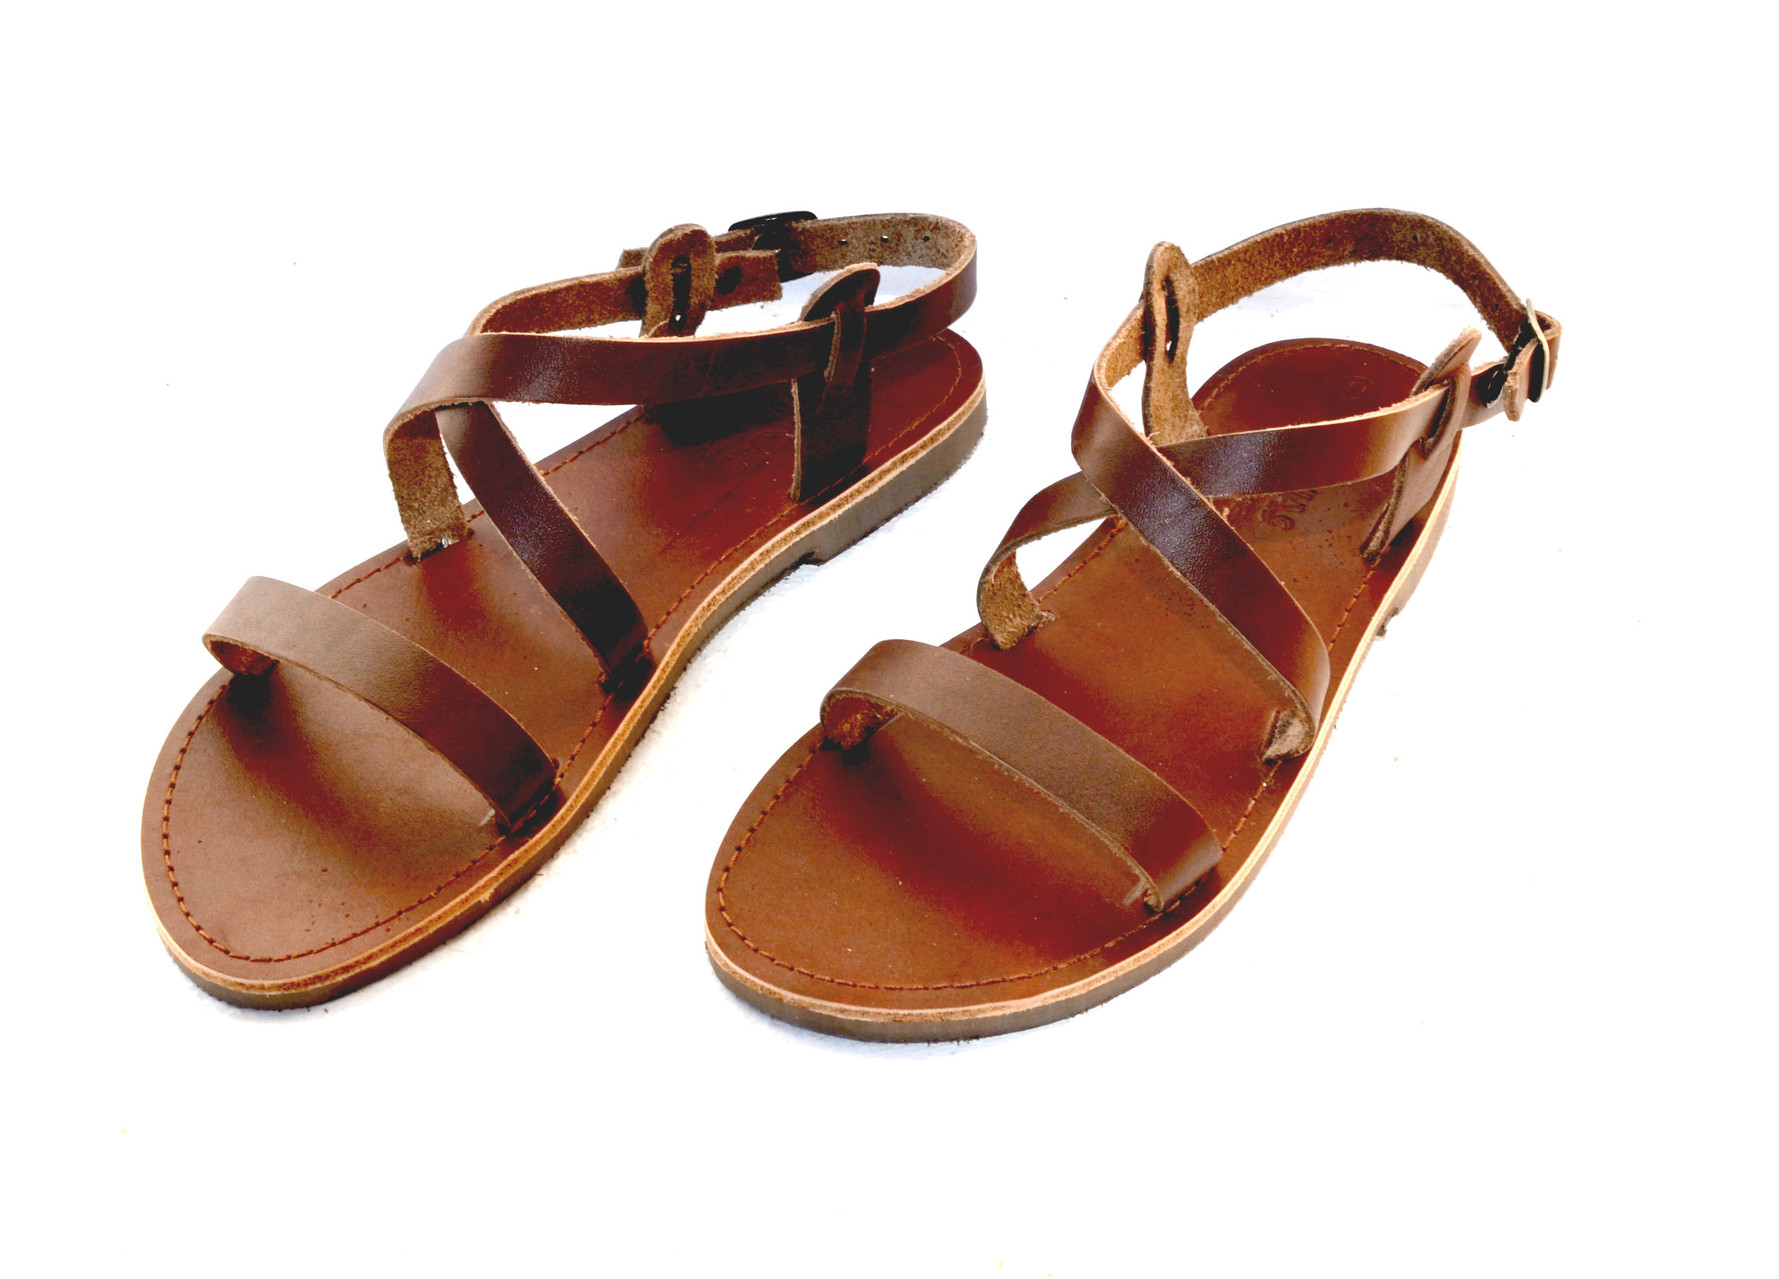 Leather Sandals From Greece Ananias Sandals